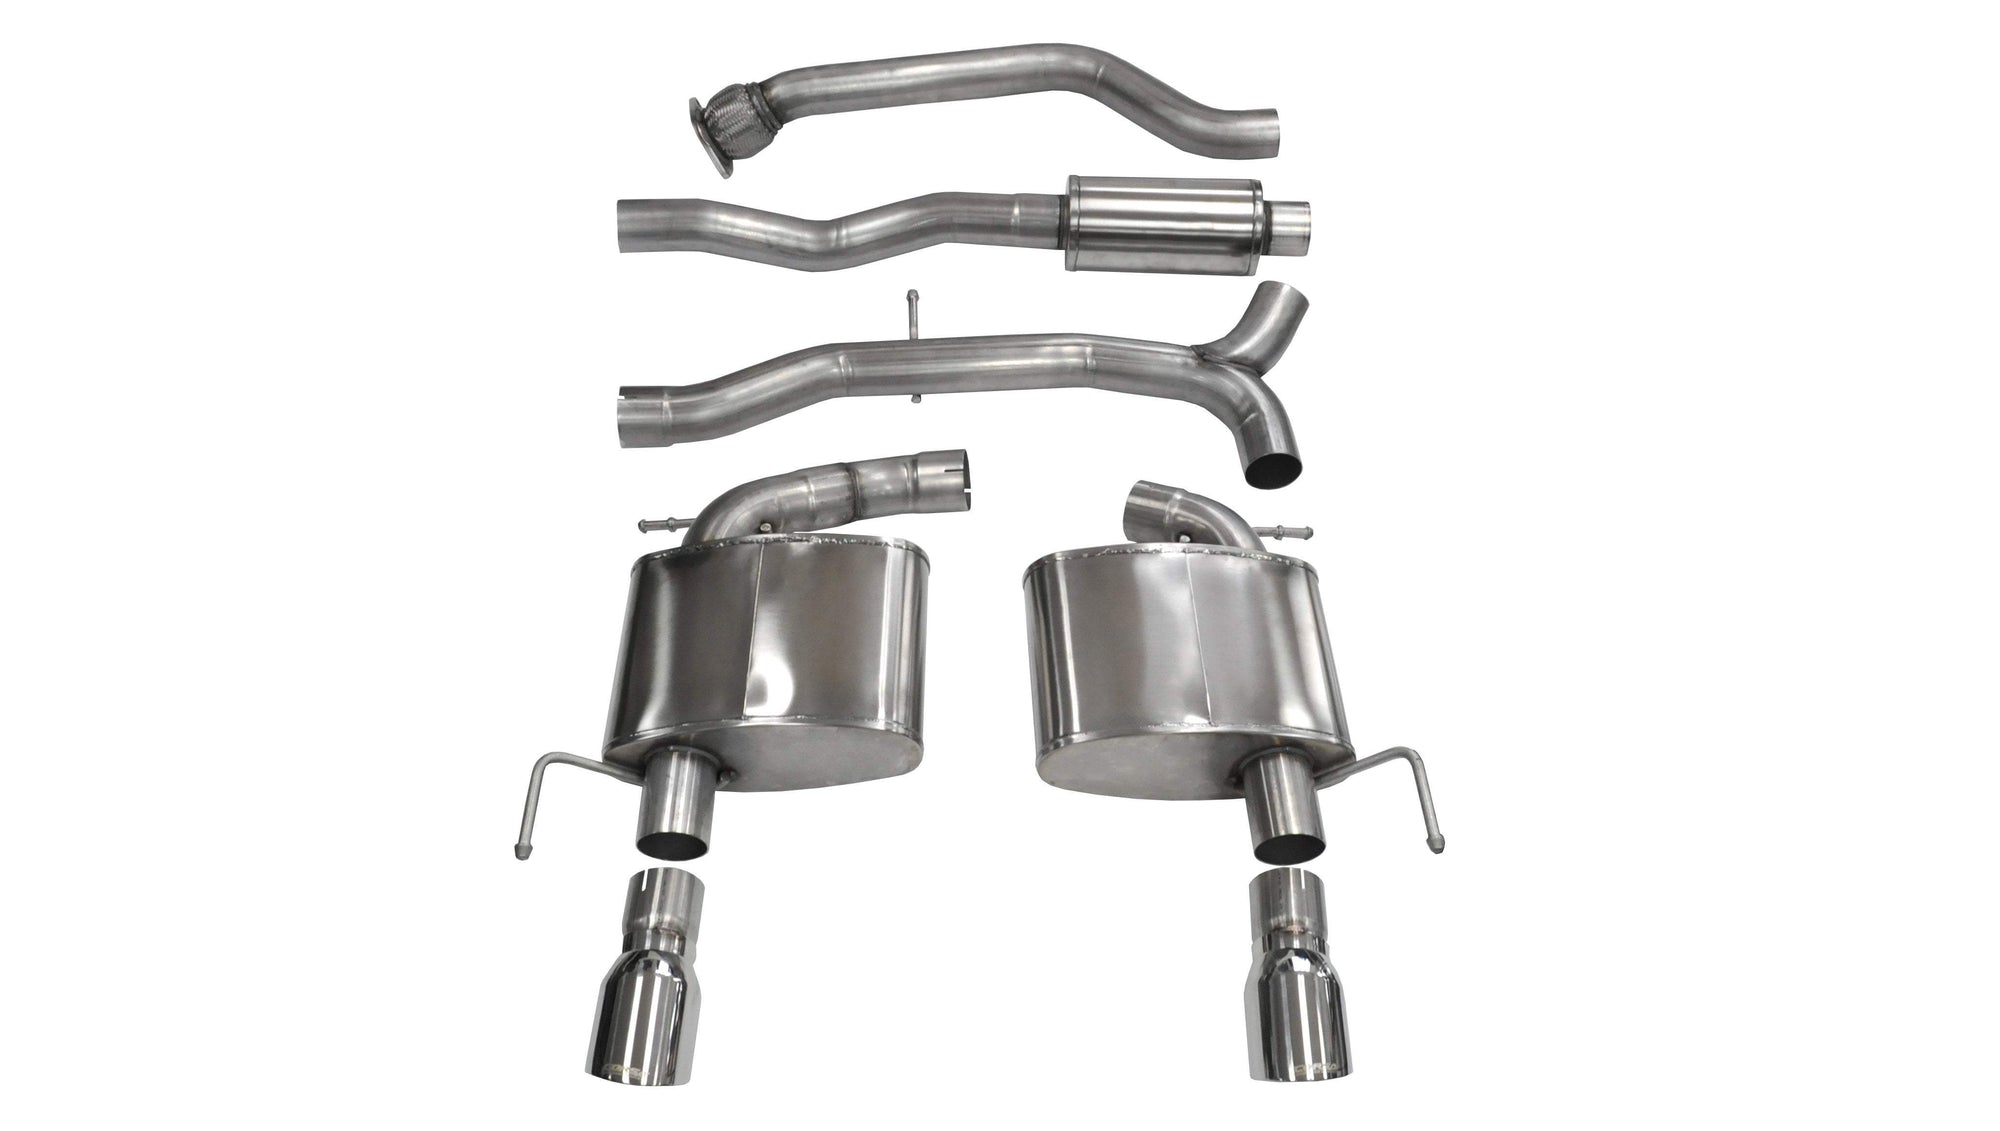 "CORSA PERFORMANCE Cat-Back Exhaust Polished / Sport / Dual Rear - Single 4.0in 2013-2019 Cadillac ATS 2.0L Turbo (Automatic) 3.0"" Dual Rear Exit Cat-Back Exhaust System with 4.0"" Tips (14888) Sport Sound Level"